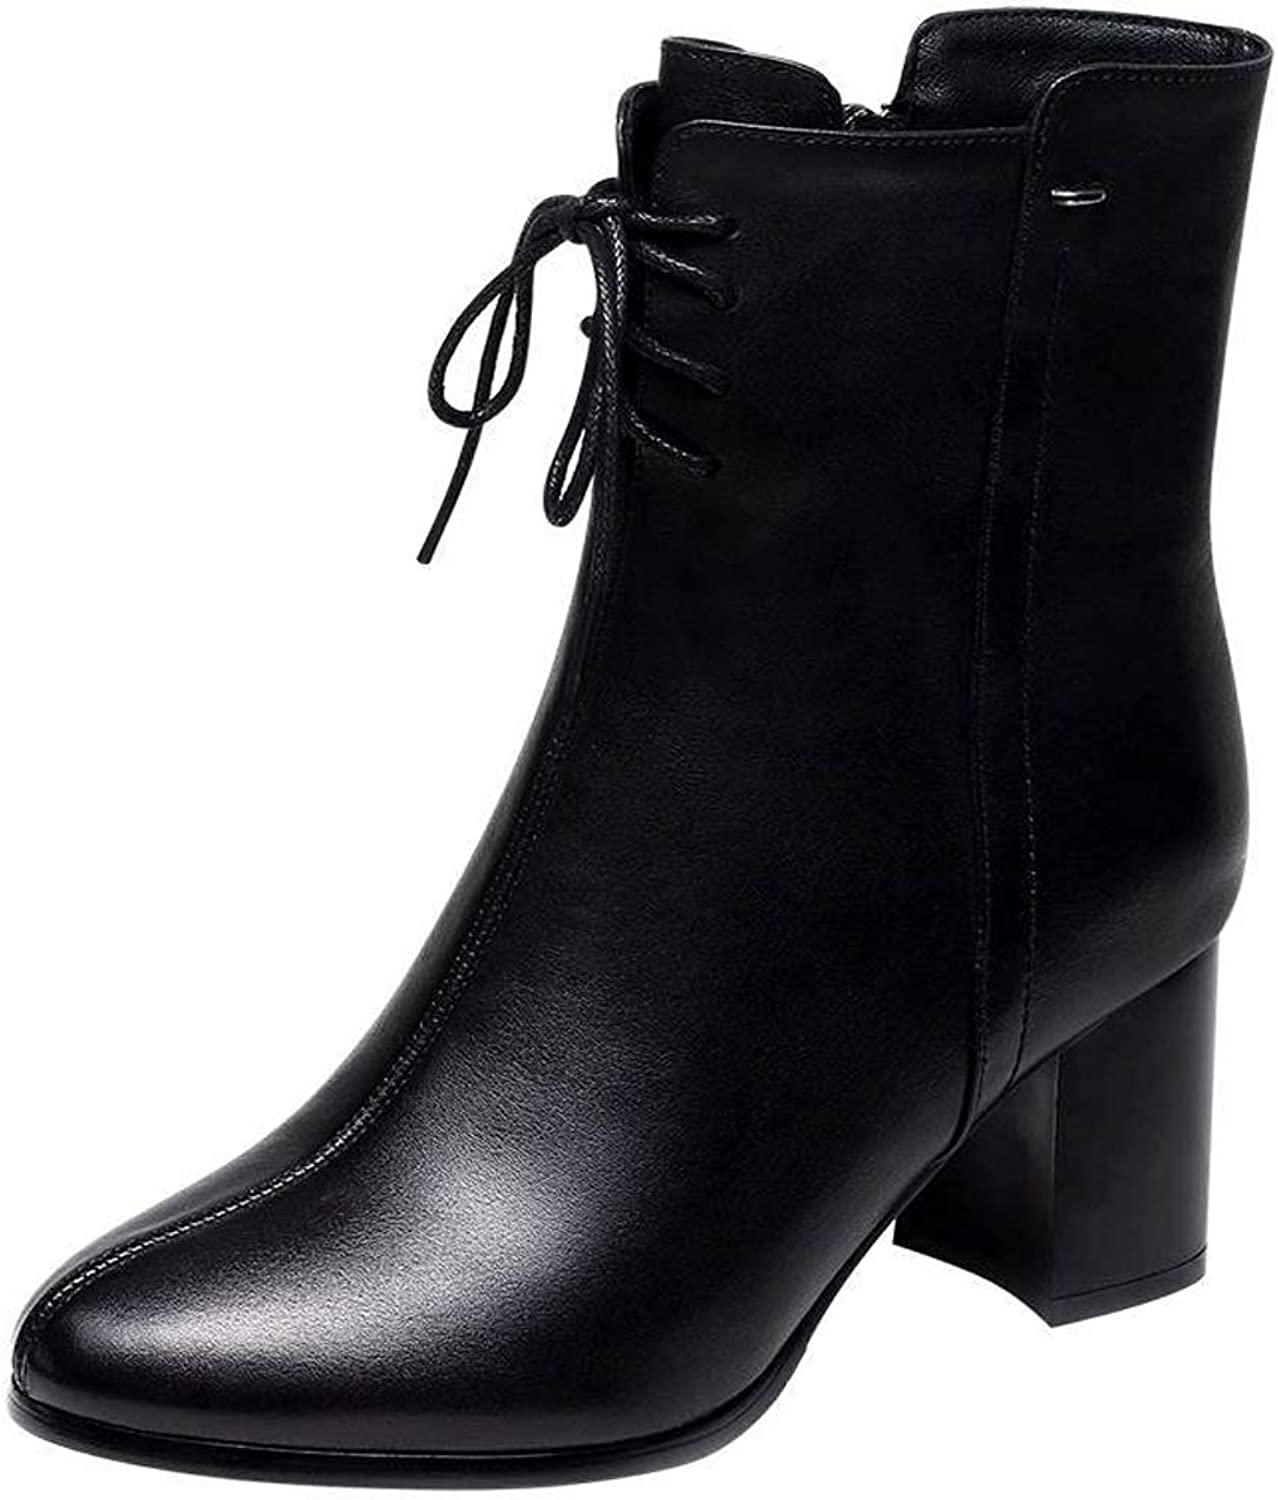 Hanxue Women's Leather Ankle Boots Chunky Heels Pointy Toe Zipper Daily Wear Booties